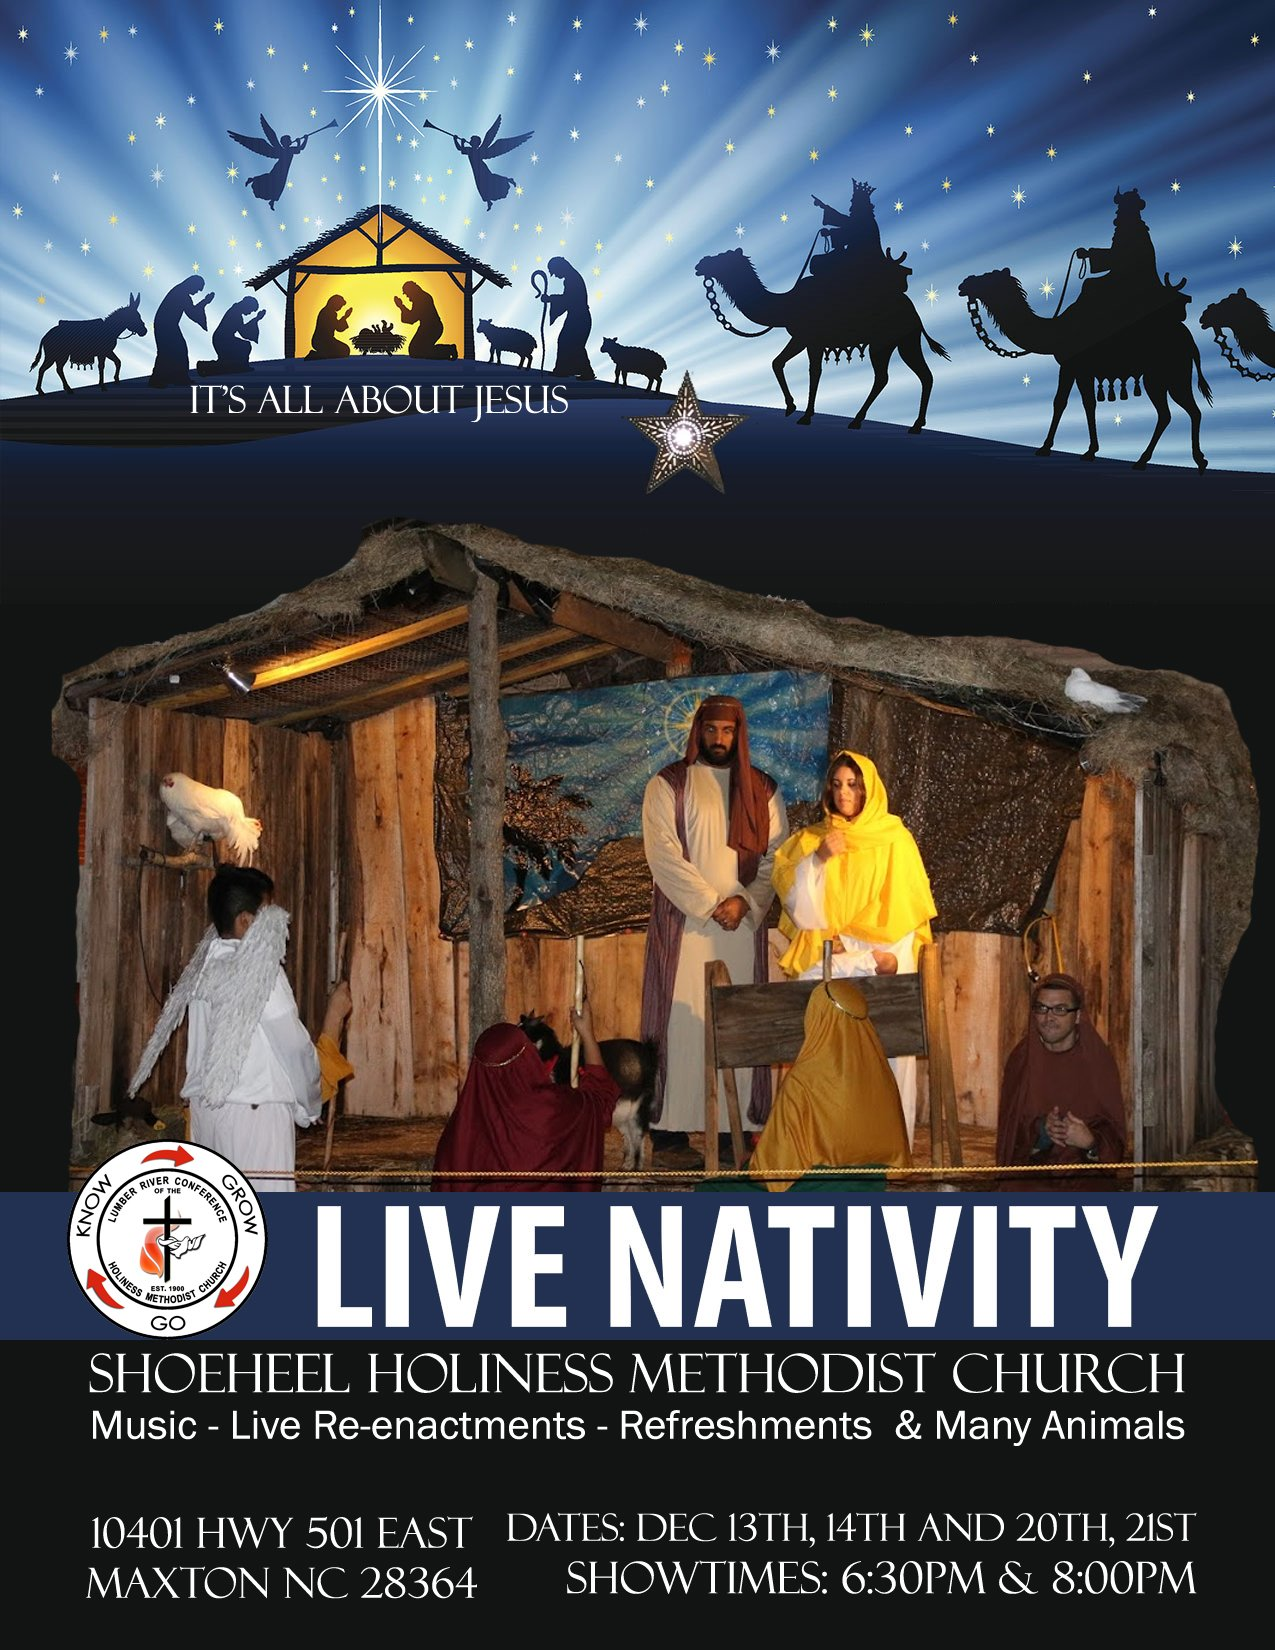 Live Nativity (Shoeheel) 2019